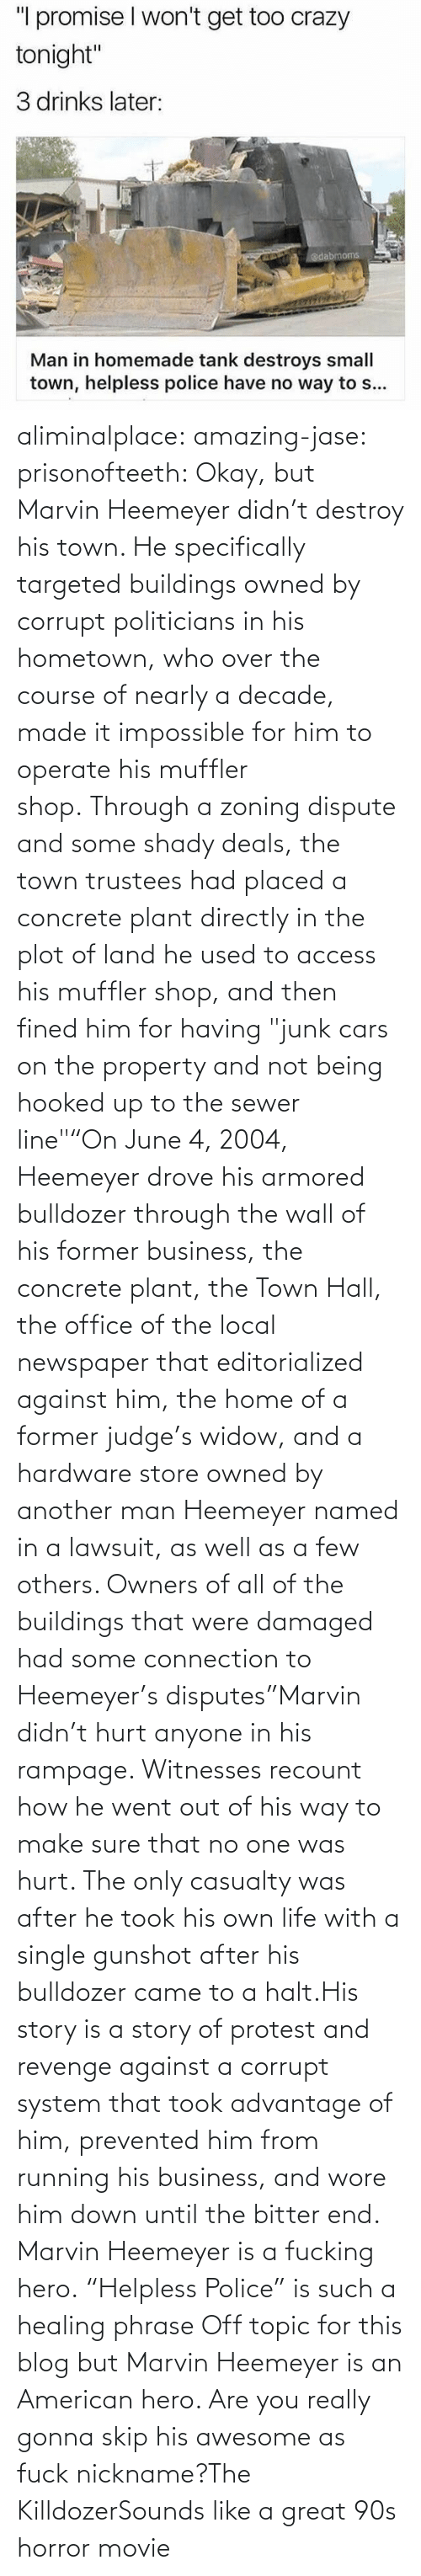 "the wall: aliminalplace: amazing-jase:  prisonofteeth: Okay, but Marvin Heemeyer didn't destroy his town. He specifically targeted buildings owned by corrupt politicians in his hometown, who over the course of nearly a decade, made it impossible for him to operate his muffler shop. Through a zoning dispute and some shady deals, the town trustees had placed a concrete plant directly in the plot of land he used to access his muffler shop, and then fined him for having ""junk cars on the property and not being hooked up to the sewer line""""On June 4, 2004, Heemeyer drove his armored bulldozer through the wall of his former business, the concrete plant, the Town Hall, the office of the local newspaper that editorialized against him, the home of a former judge's widow, and a hardware store owned by another man Heemeyer named in a lawsuit, as well as a few others. Owners of all of the buildings that were damaged had some connection to Heemeyer's disputes""Marvin didn't hurt anyone in his rampage. Witnesses recount how he went out of his way to make sure that no one was hurt. The only casualty was after he took his own life with a single gunshot after his bulldozer came to a halt.His story is a story of protest and revenge against a corrupt system that took advantage of him, prevented him from running his business, and wore him down until the bitter end. Marvin Heemeyer is a fucking hero. ""Helpless Police"" is such a healing phrase    Off topic for this blog but Marvin Heemeyer is an American hero.     Are you really gonna skip his awesome as fuck nickname?The KilldozerSounds like a great 90s horror movie"